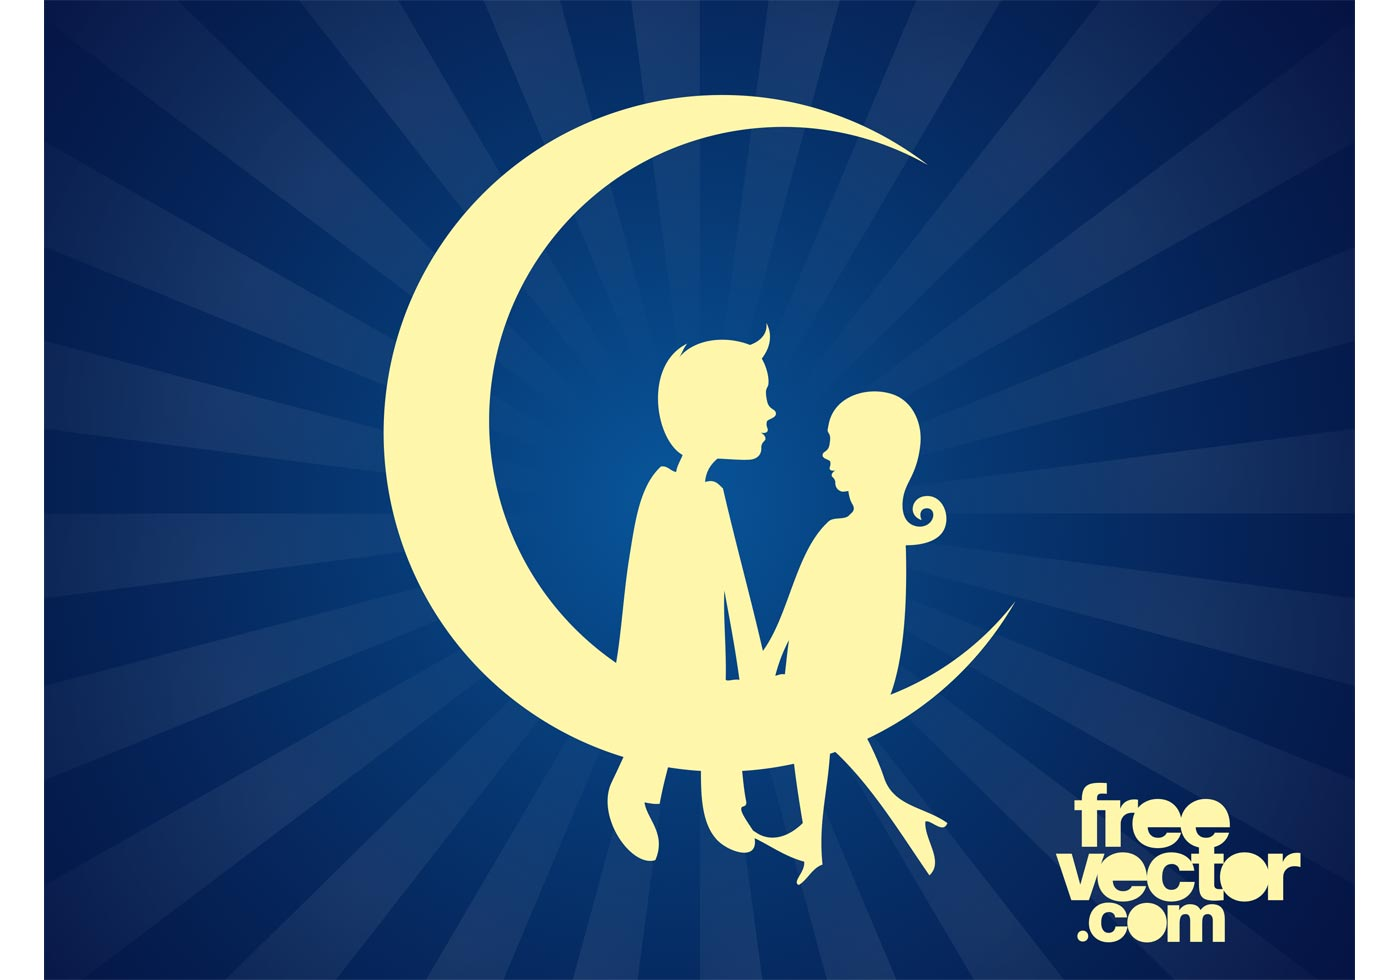 Couple Sitting On Moon - Download Free Vector Art, Stock ...